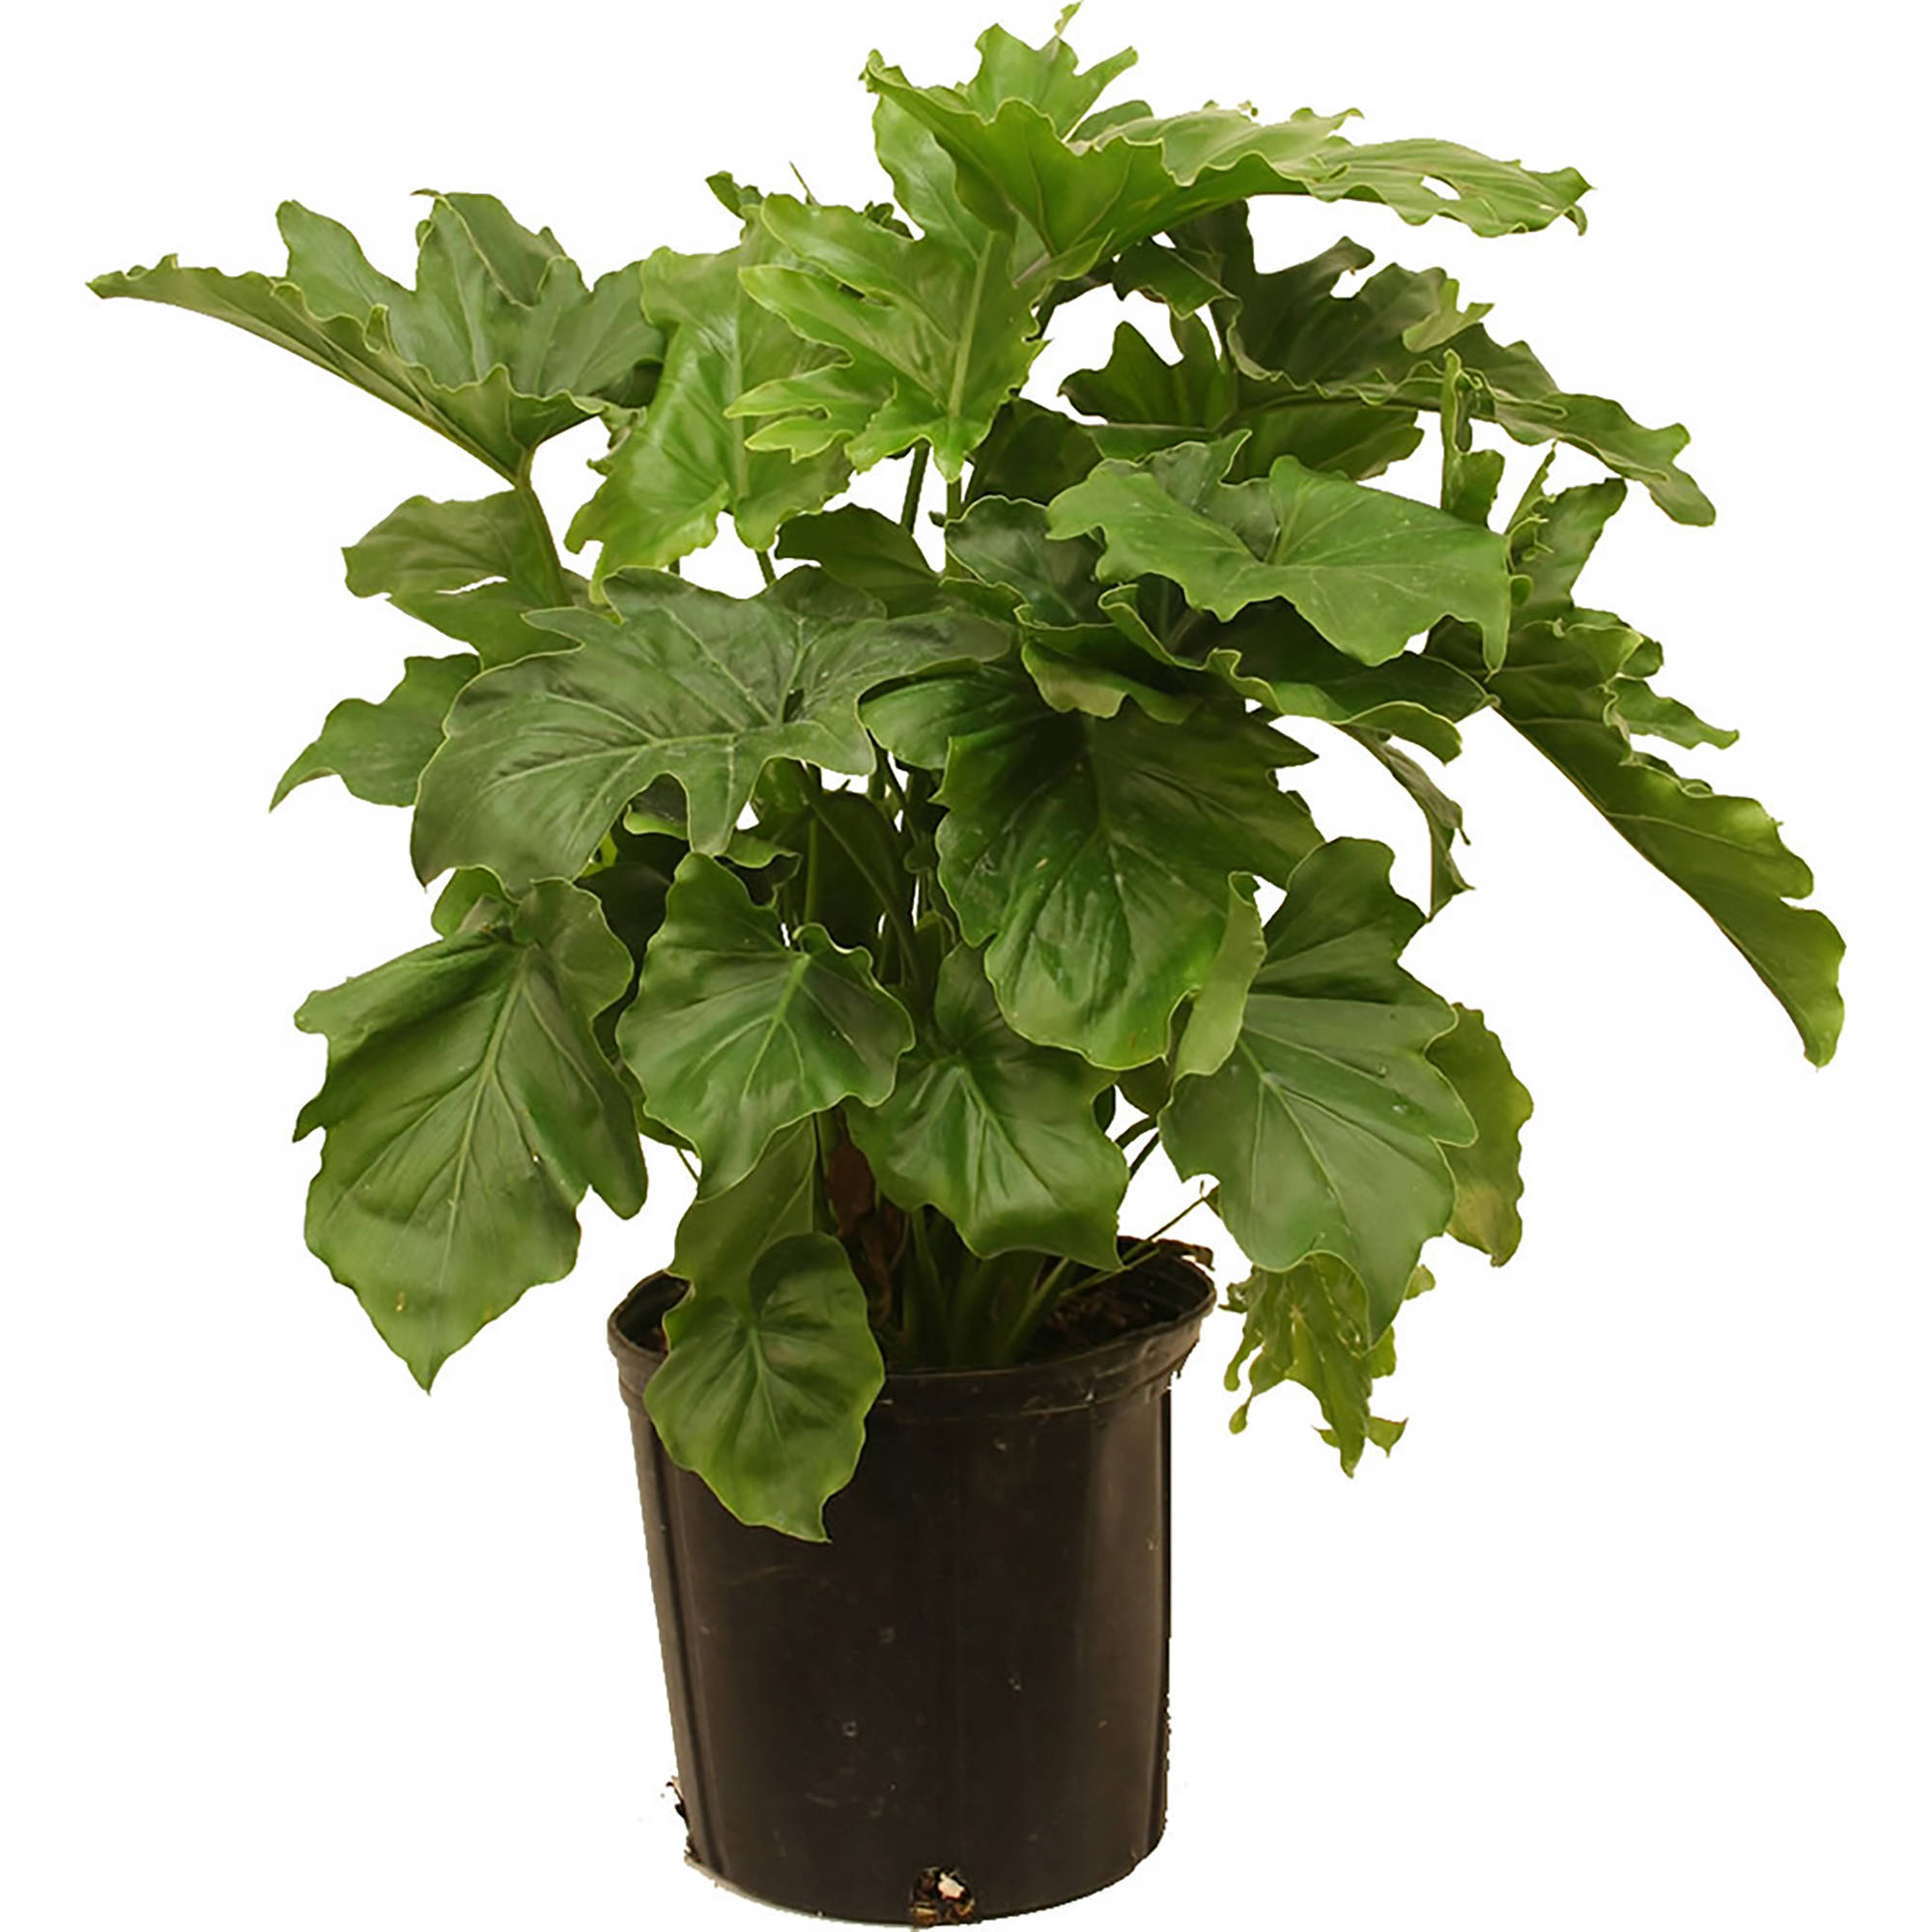 Delray Plants live Philo Selloum Indoor Plant in 10 inch Grower Pot